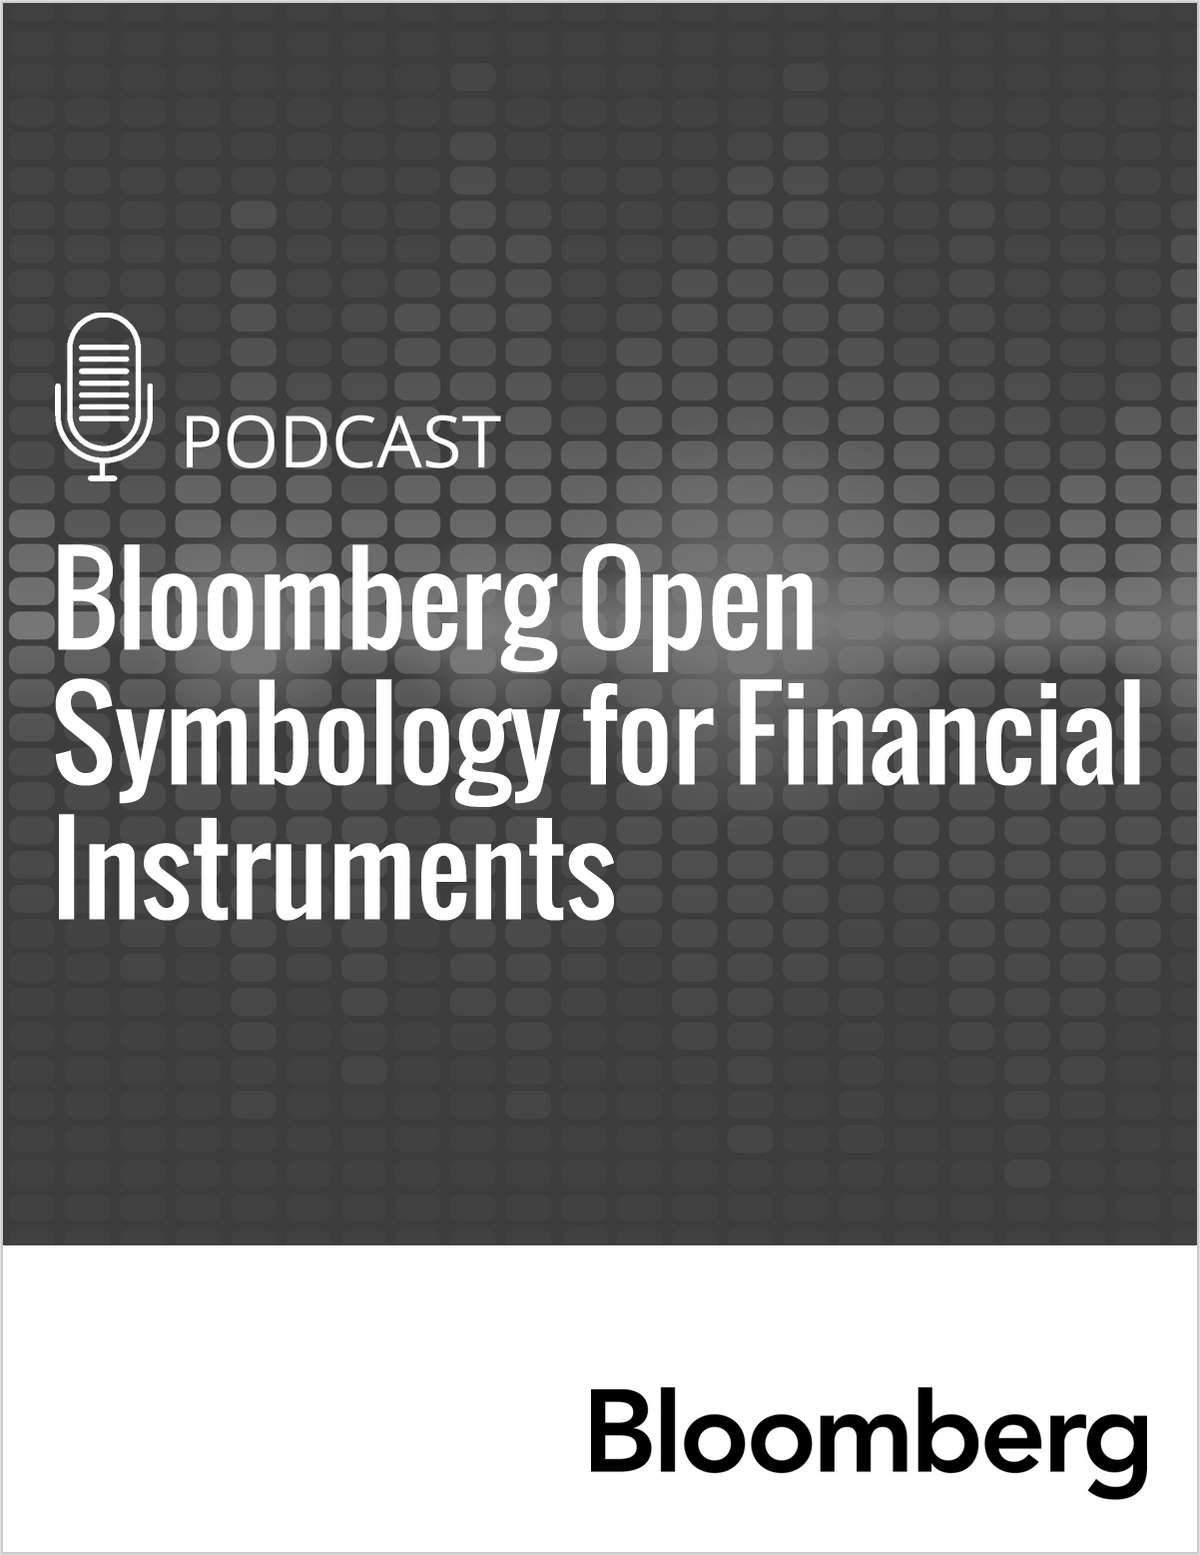 Bloomberg Open Symbology for Financial Instruments